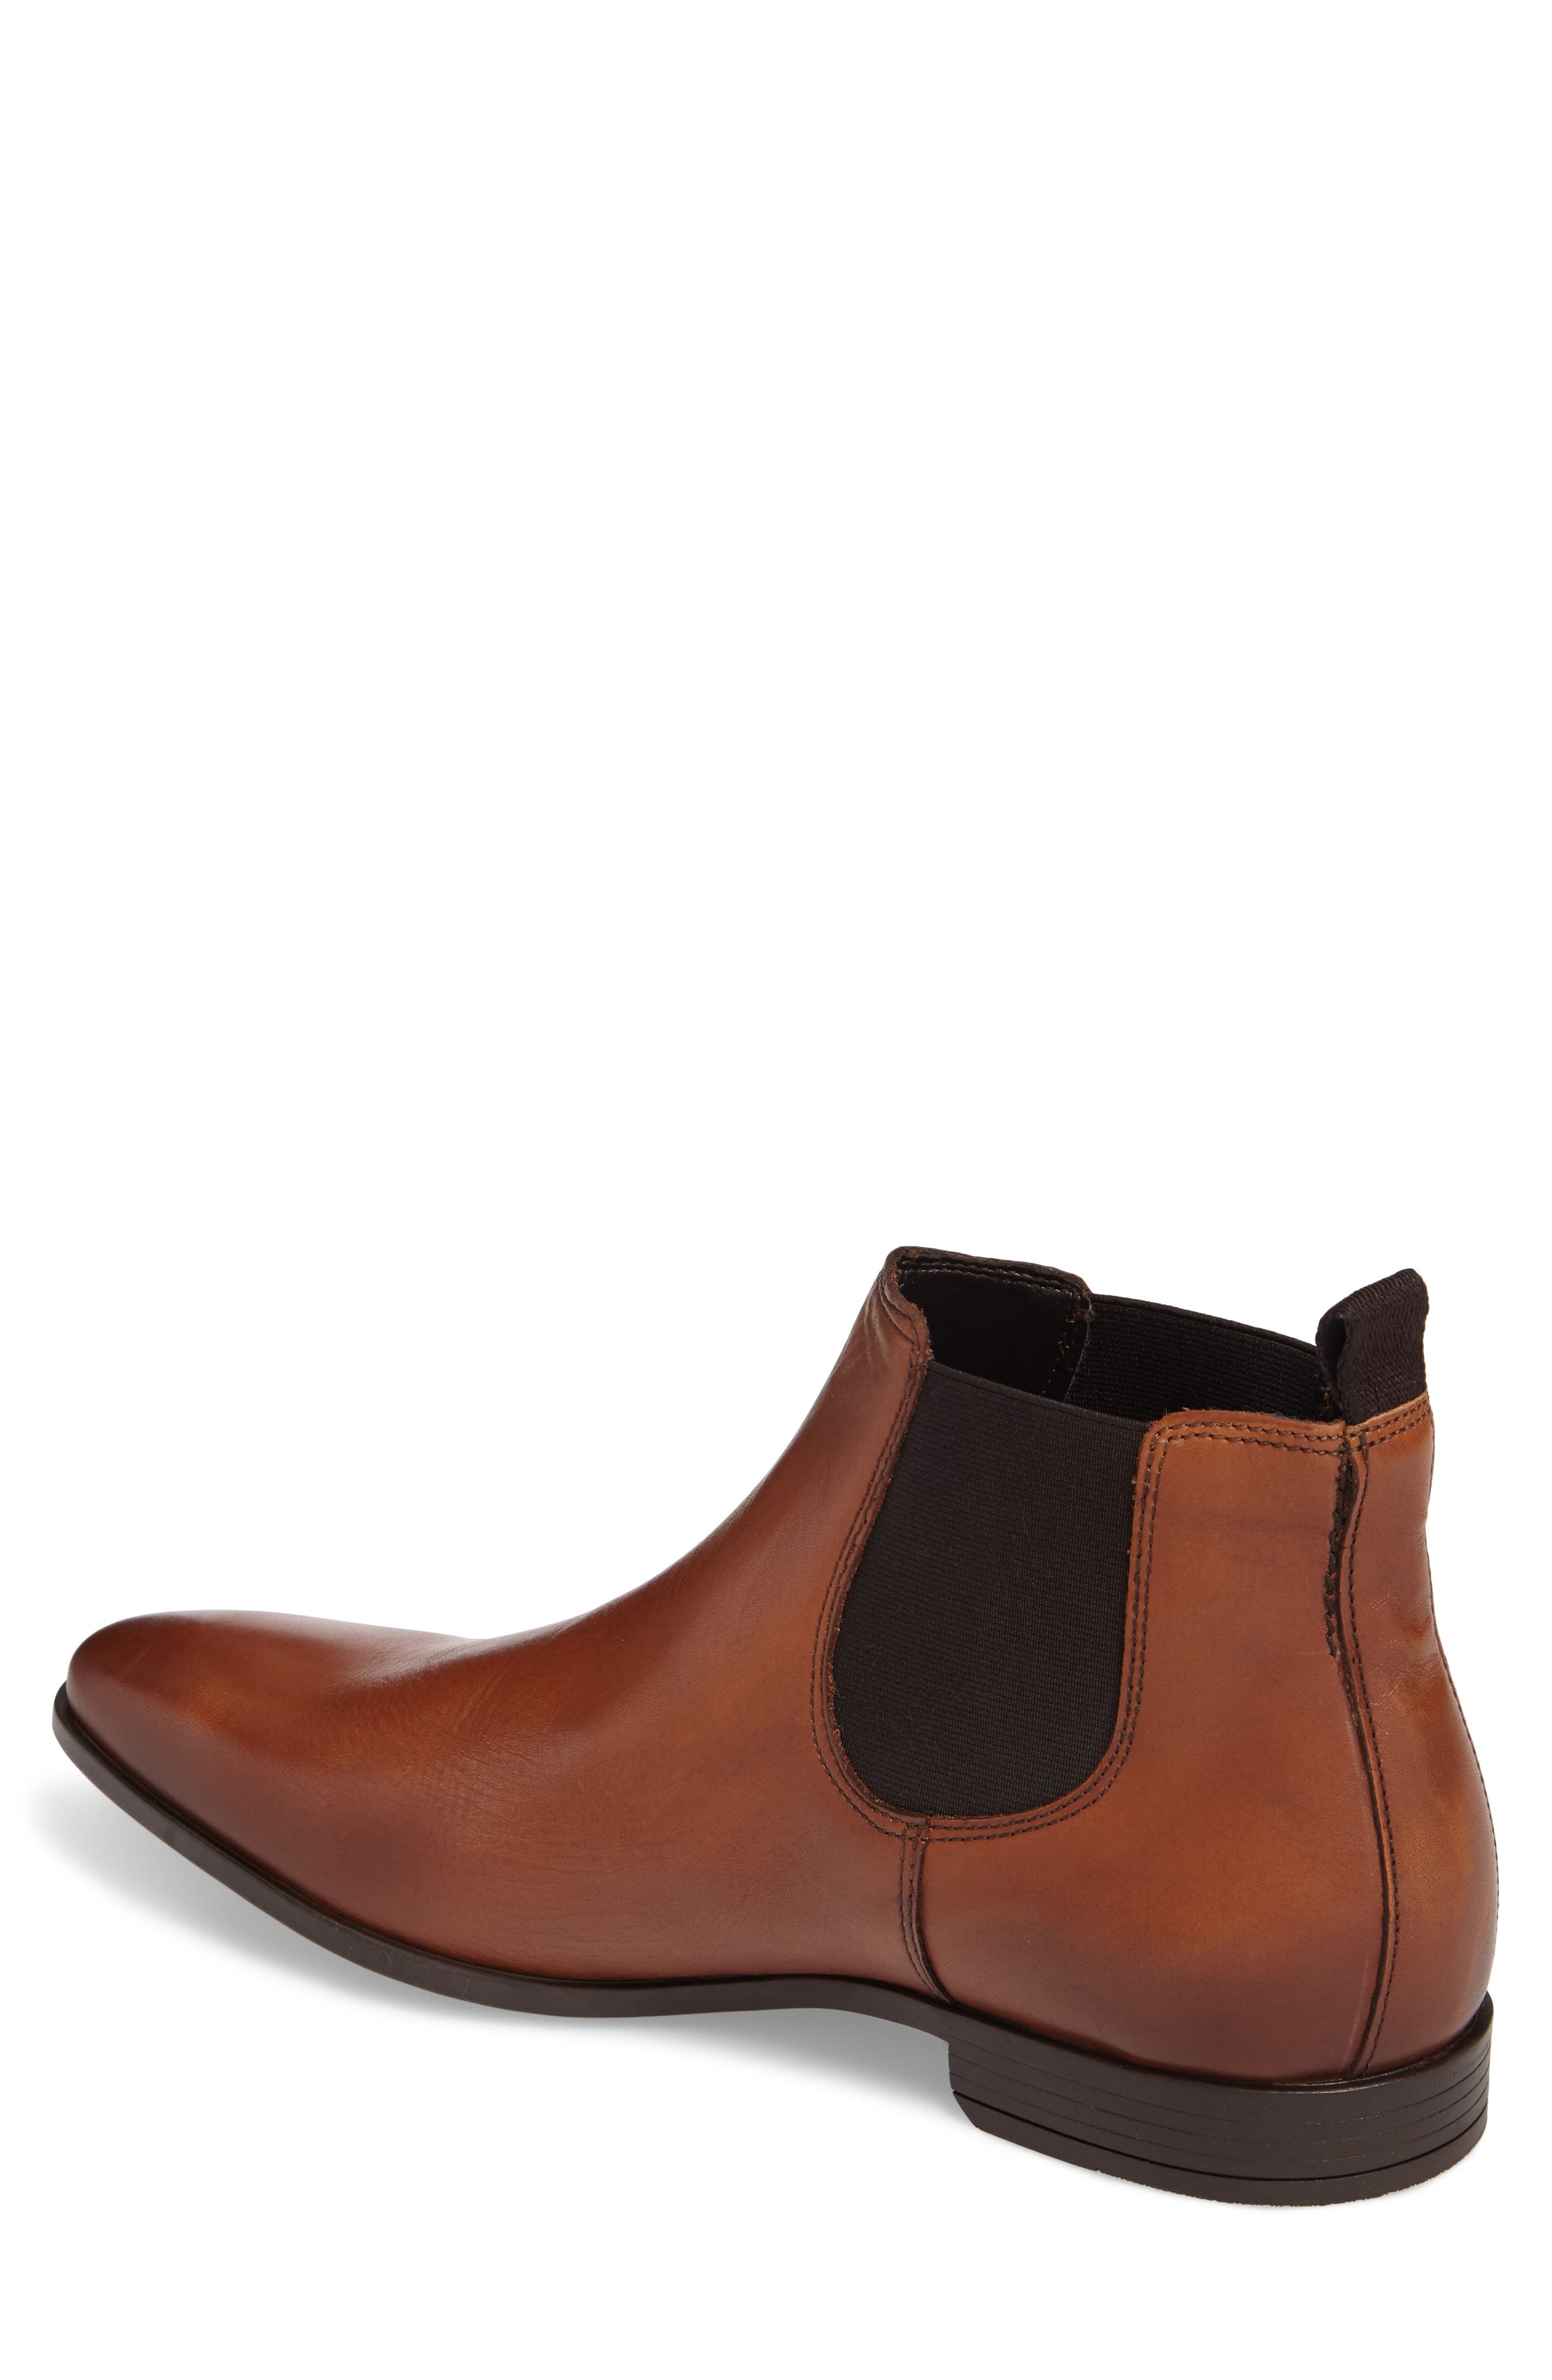 'Canton' Chelsea Boot,                             Alternate thumbnail 2, color,                             Tan Leather